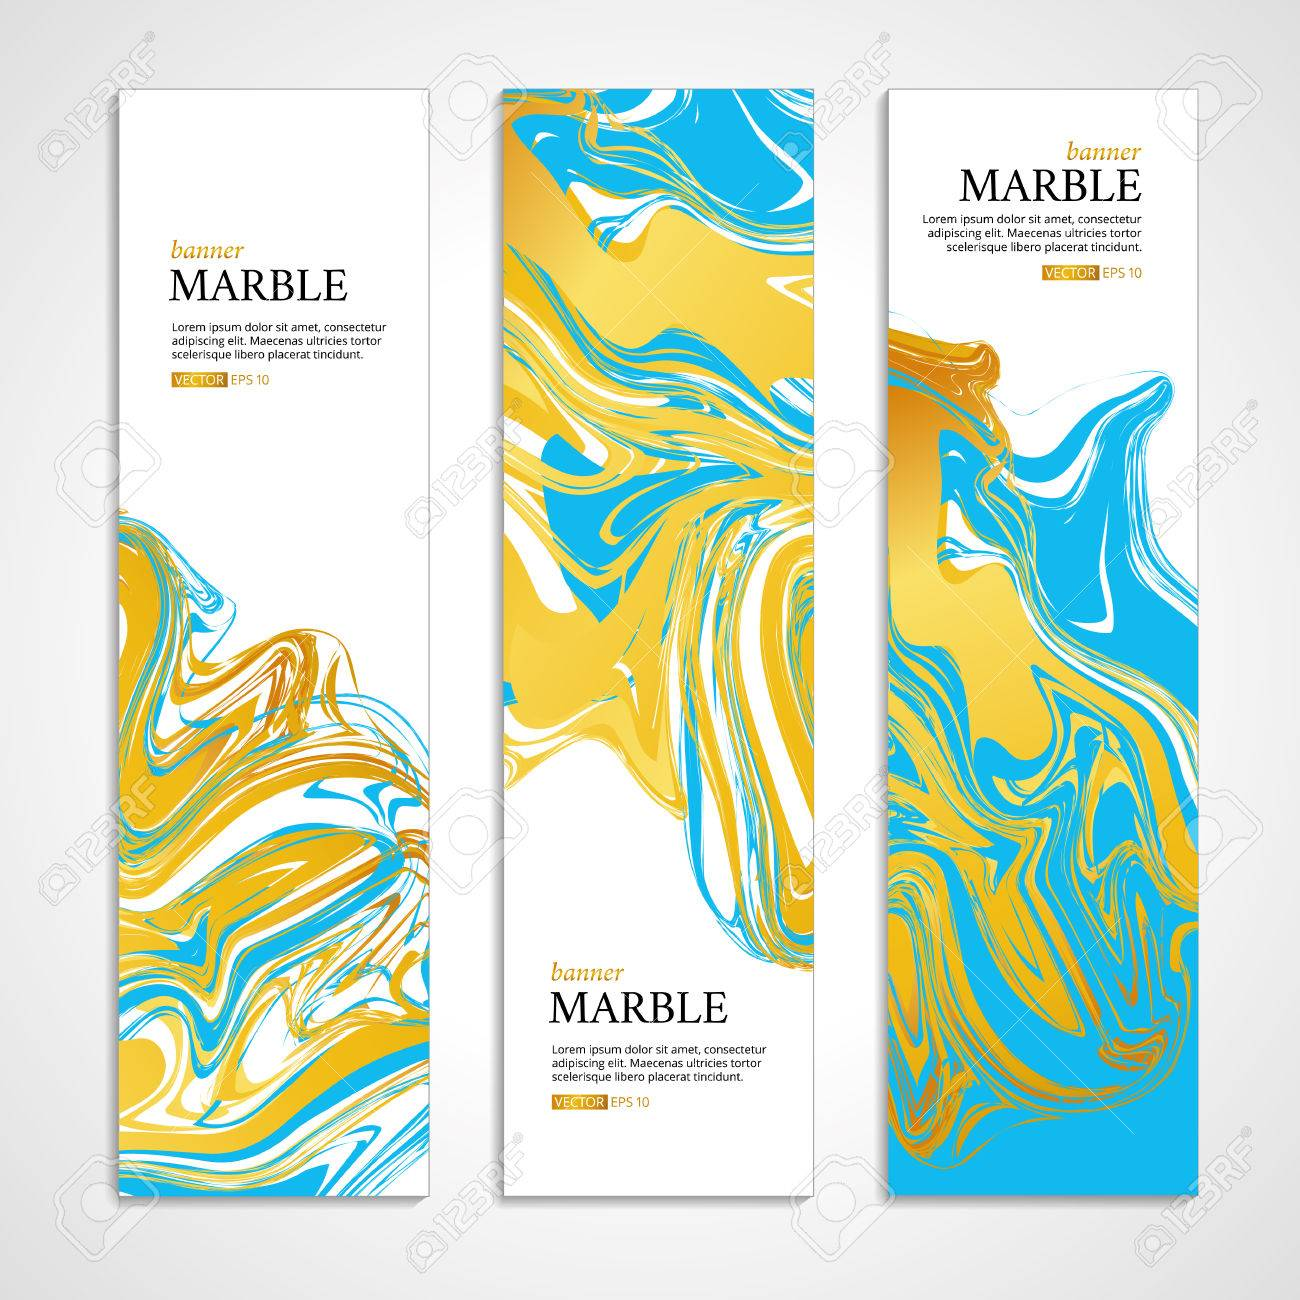 Marble texture banner. Abstract pattern for banner. Marble yellow background, banners. Gold marble. Blue background. Banners for , web, card, vip exclusive certificate, gift luxury voucher. - 56220416